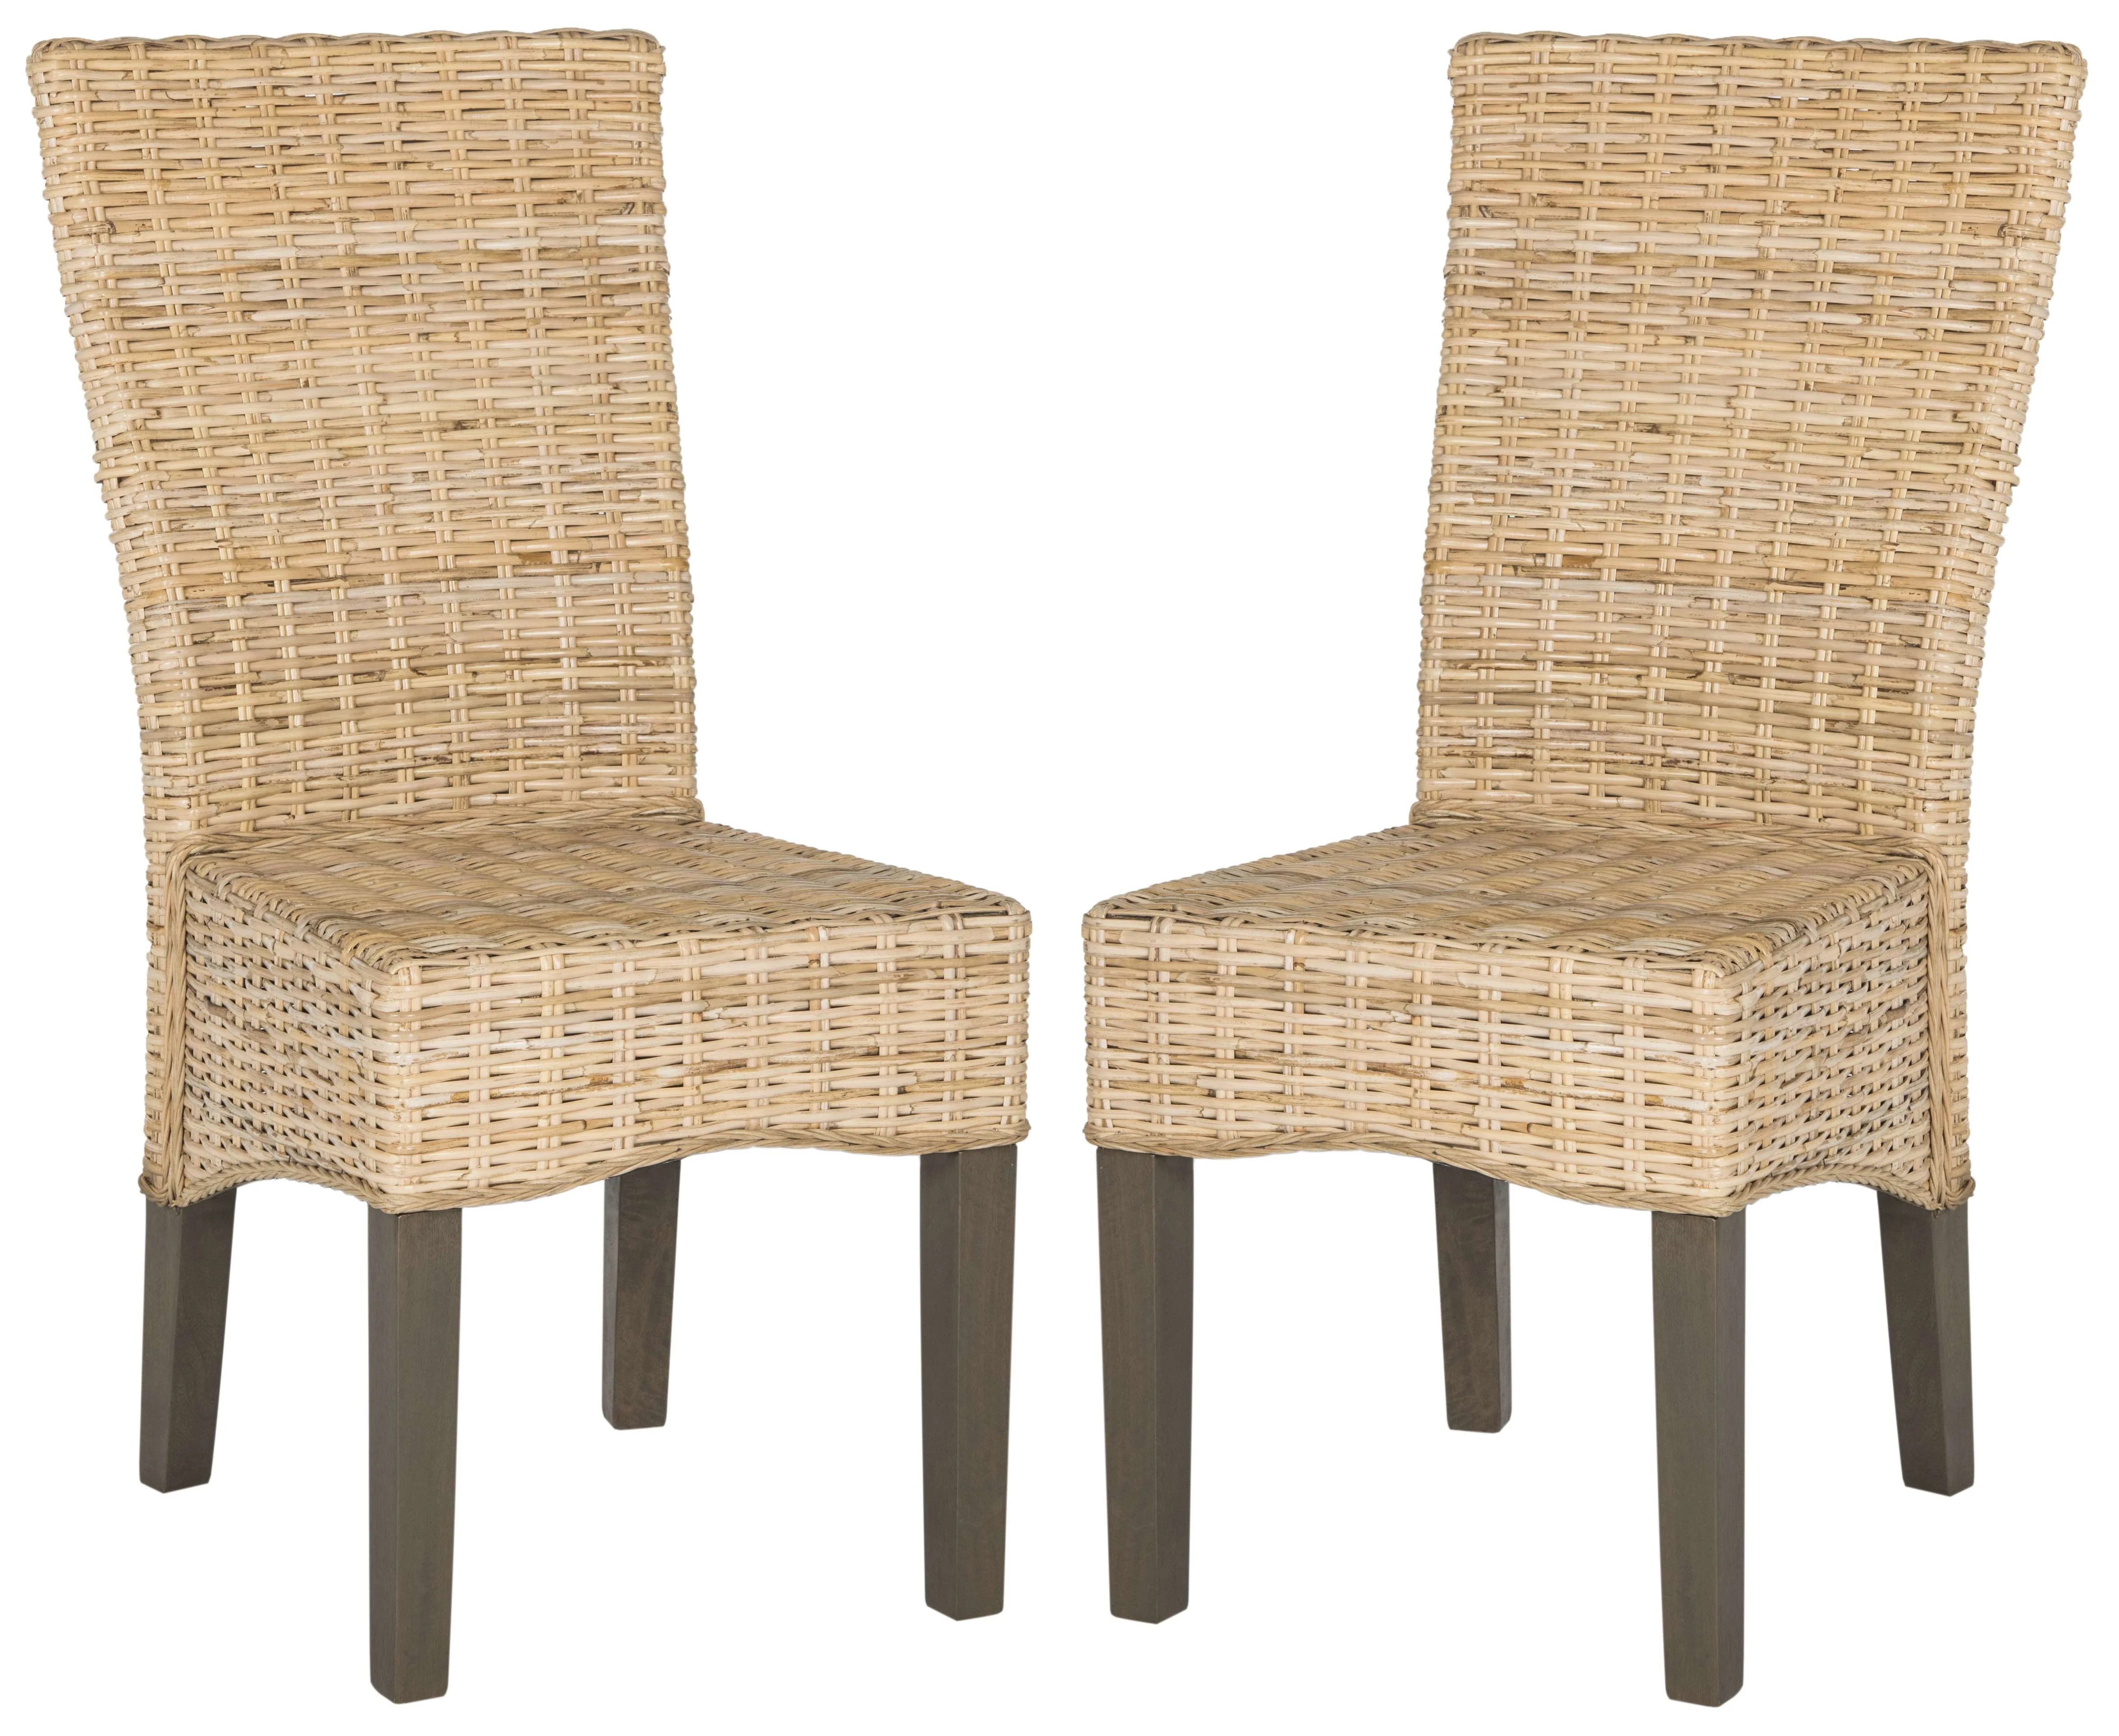 Outdoor Wicker Dining Chairs Safavieh Sea8014c Set2